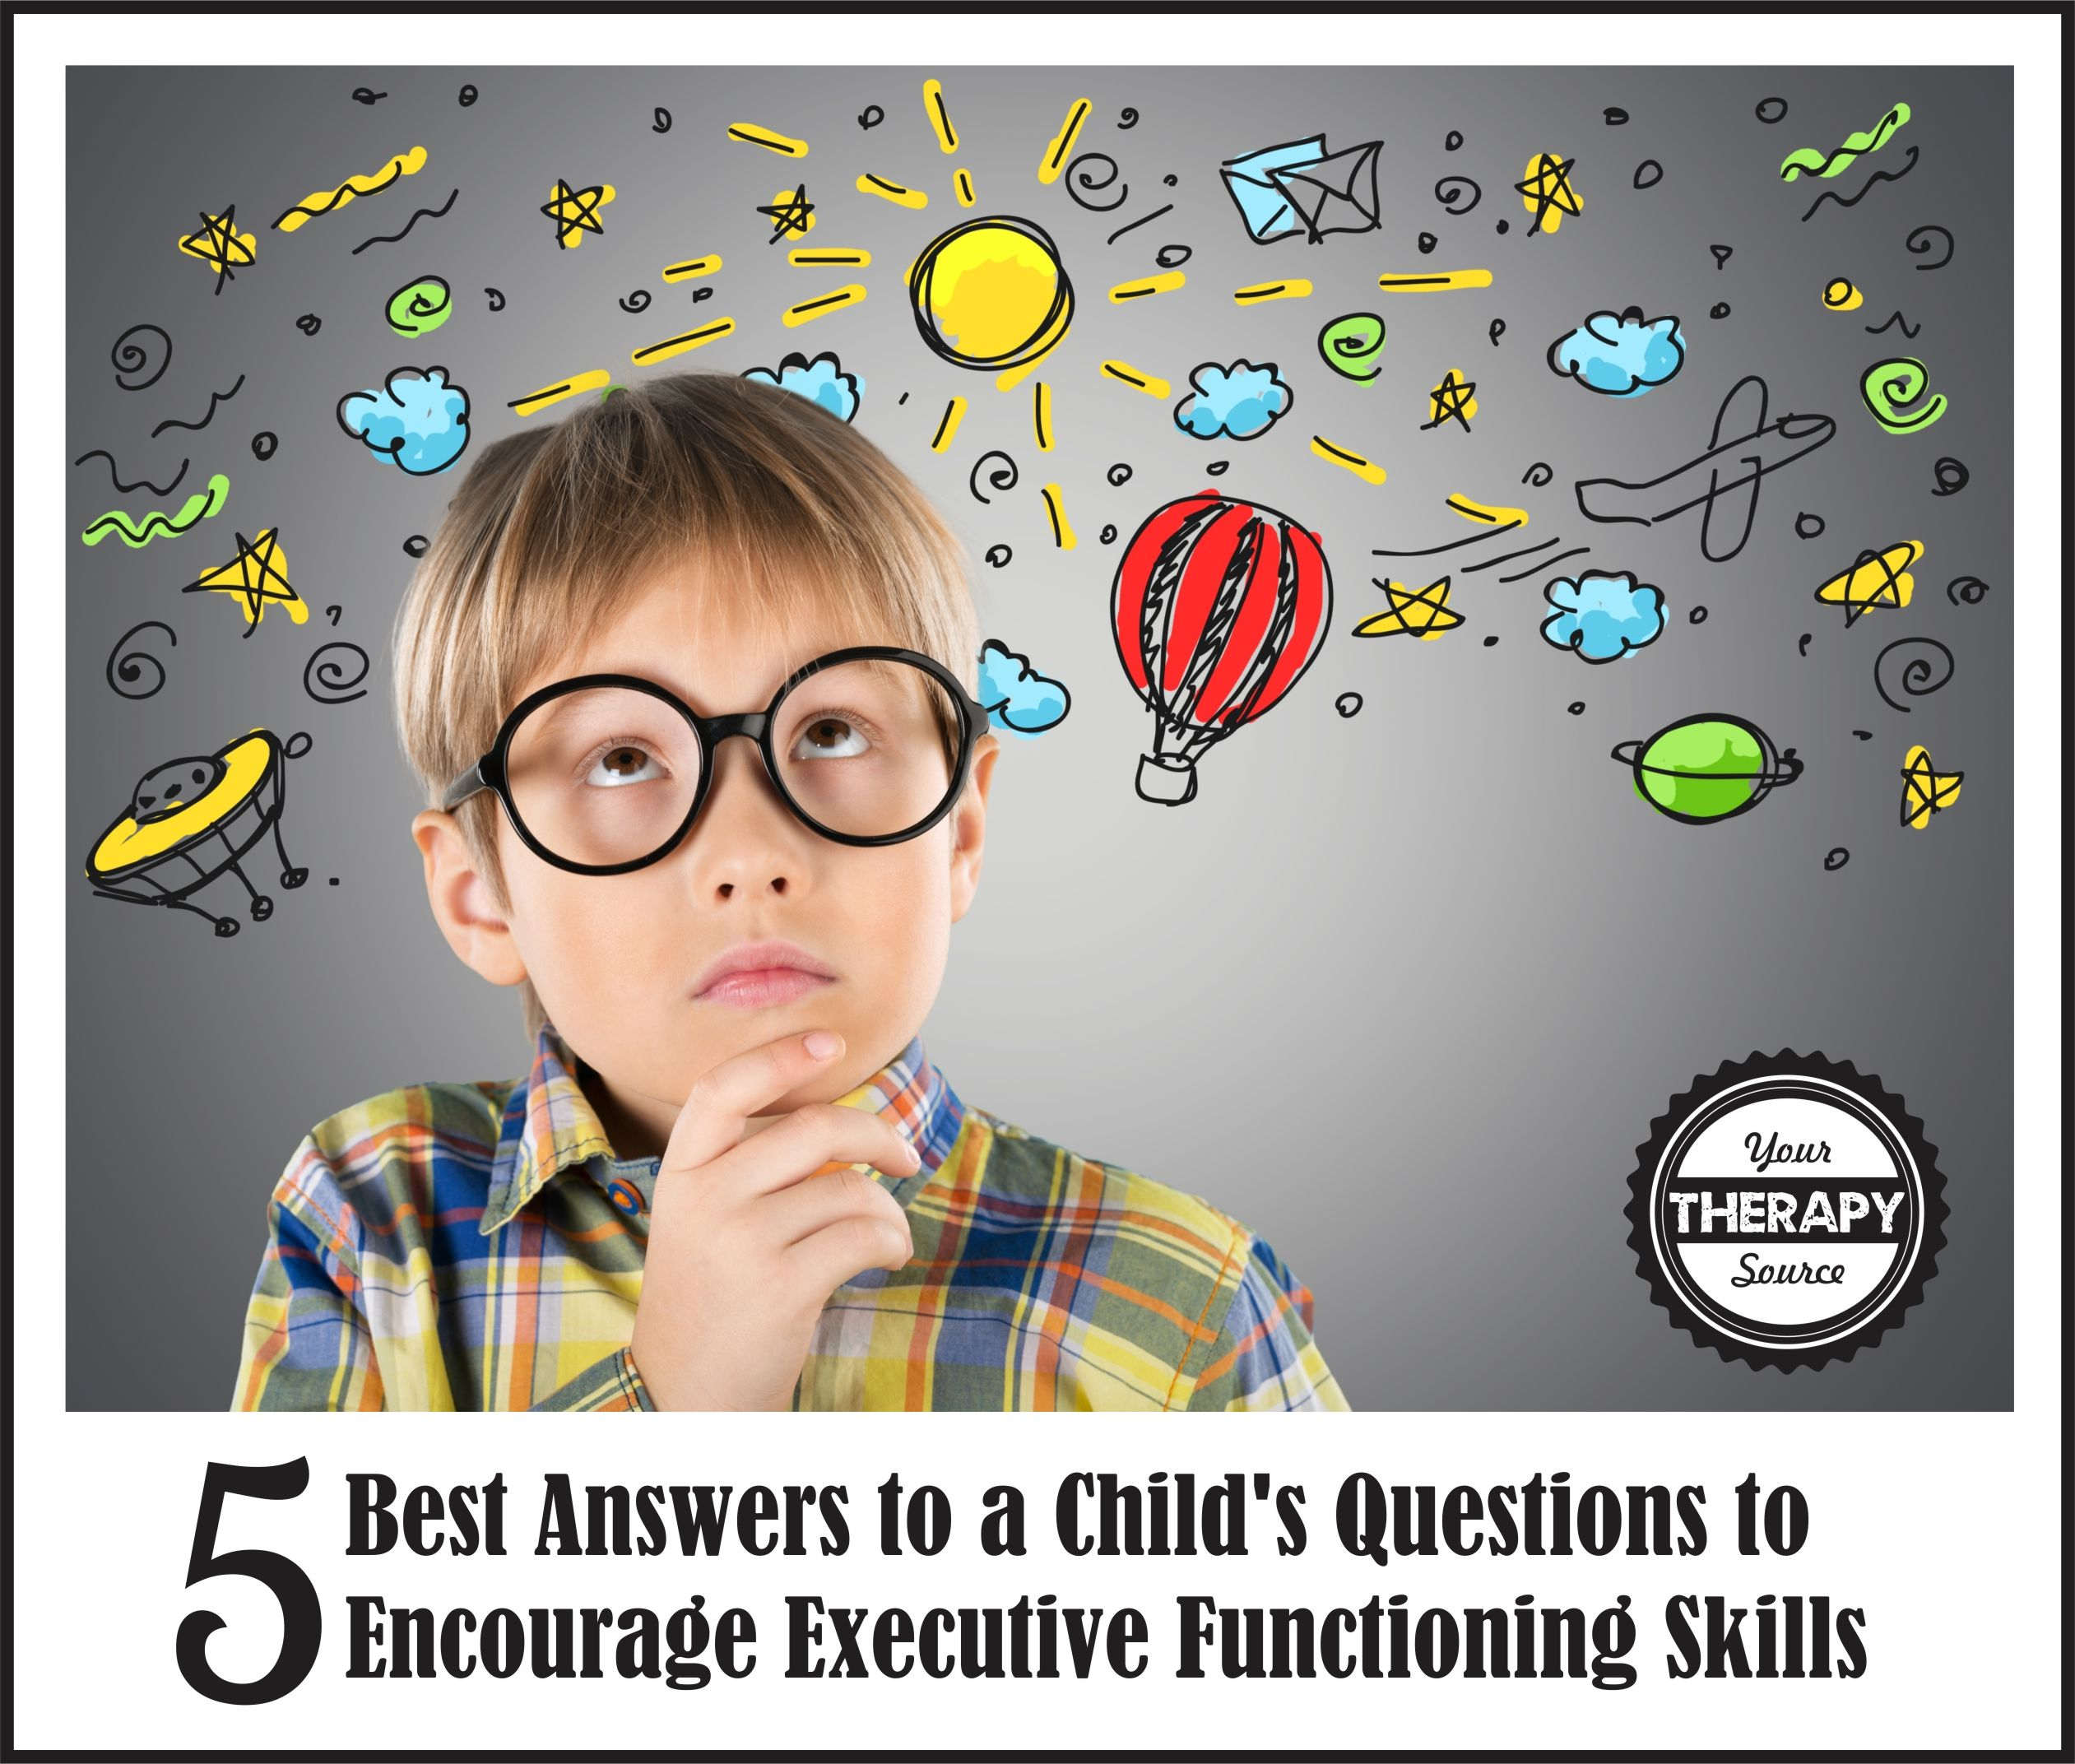 5 Best Answers to Encourage Executive Functioning Skills